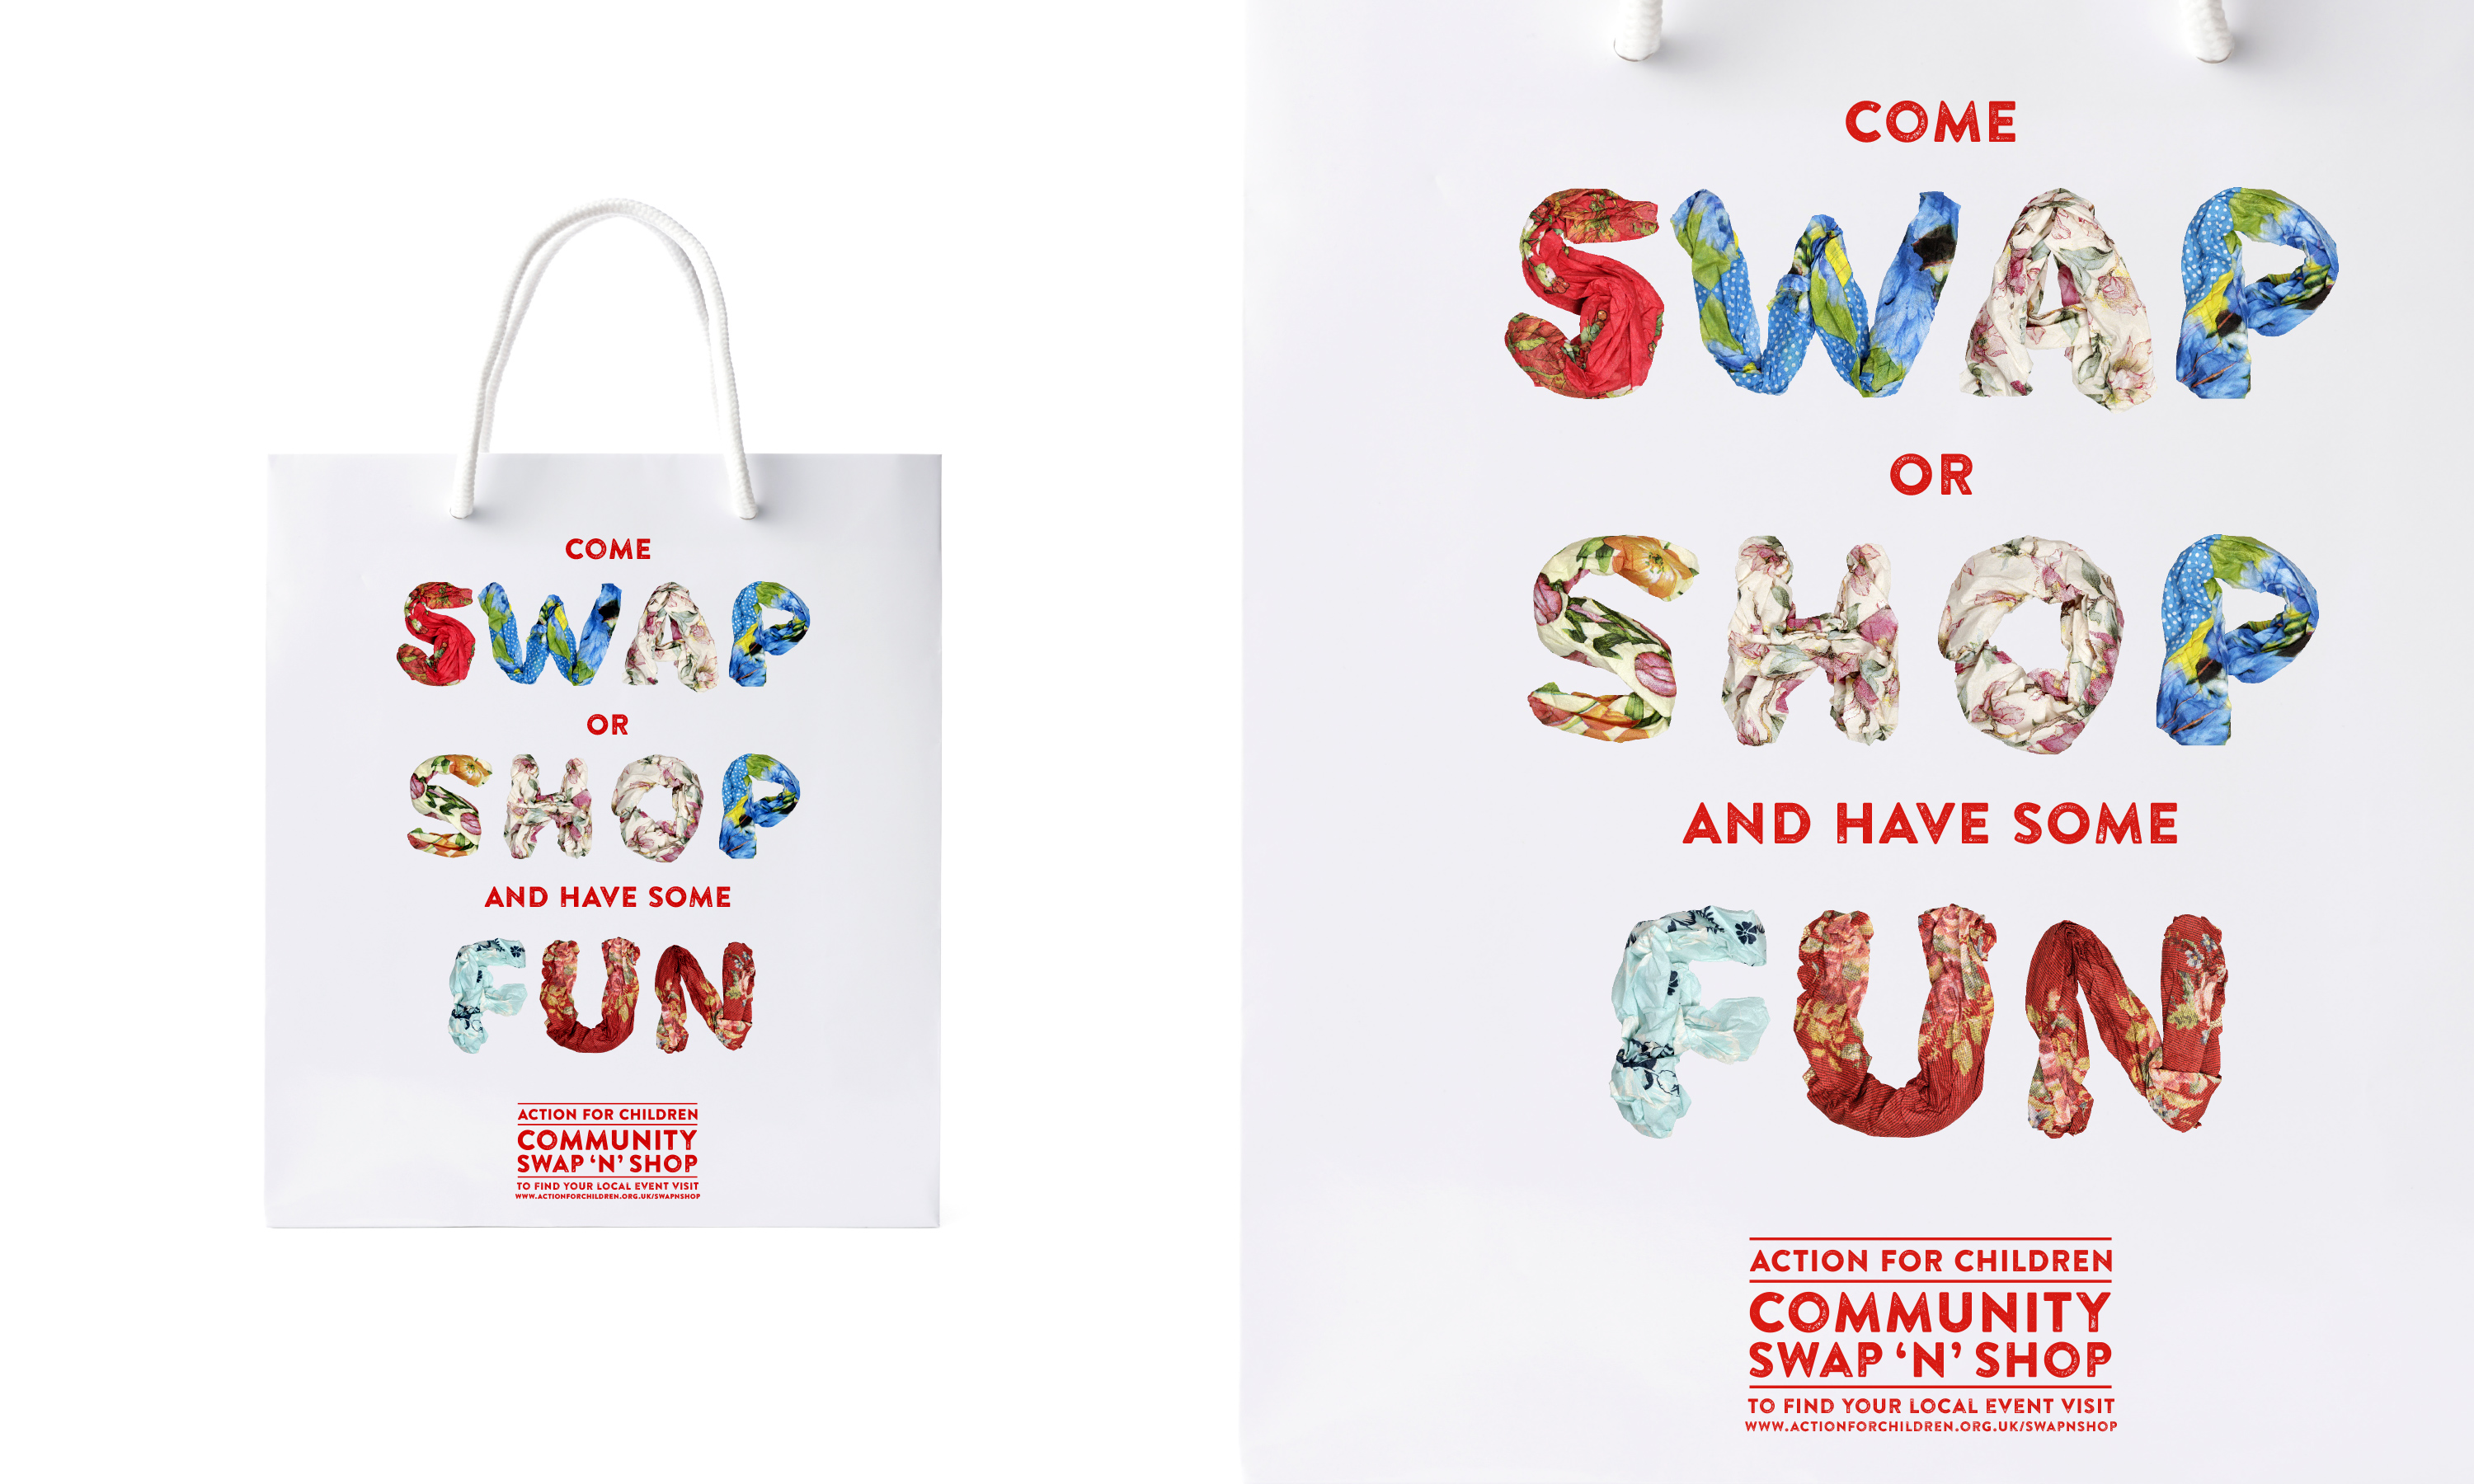 Brand campaign and advertising by Neon - Charity sector branding - Action for children - Swap and Shop - Swap and shop shopping bag detail designed by Dana Robertson